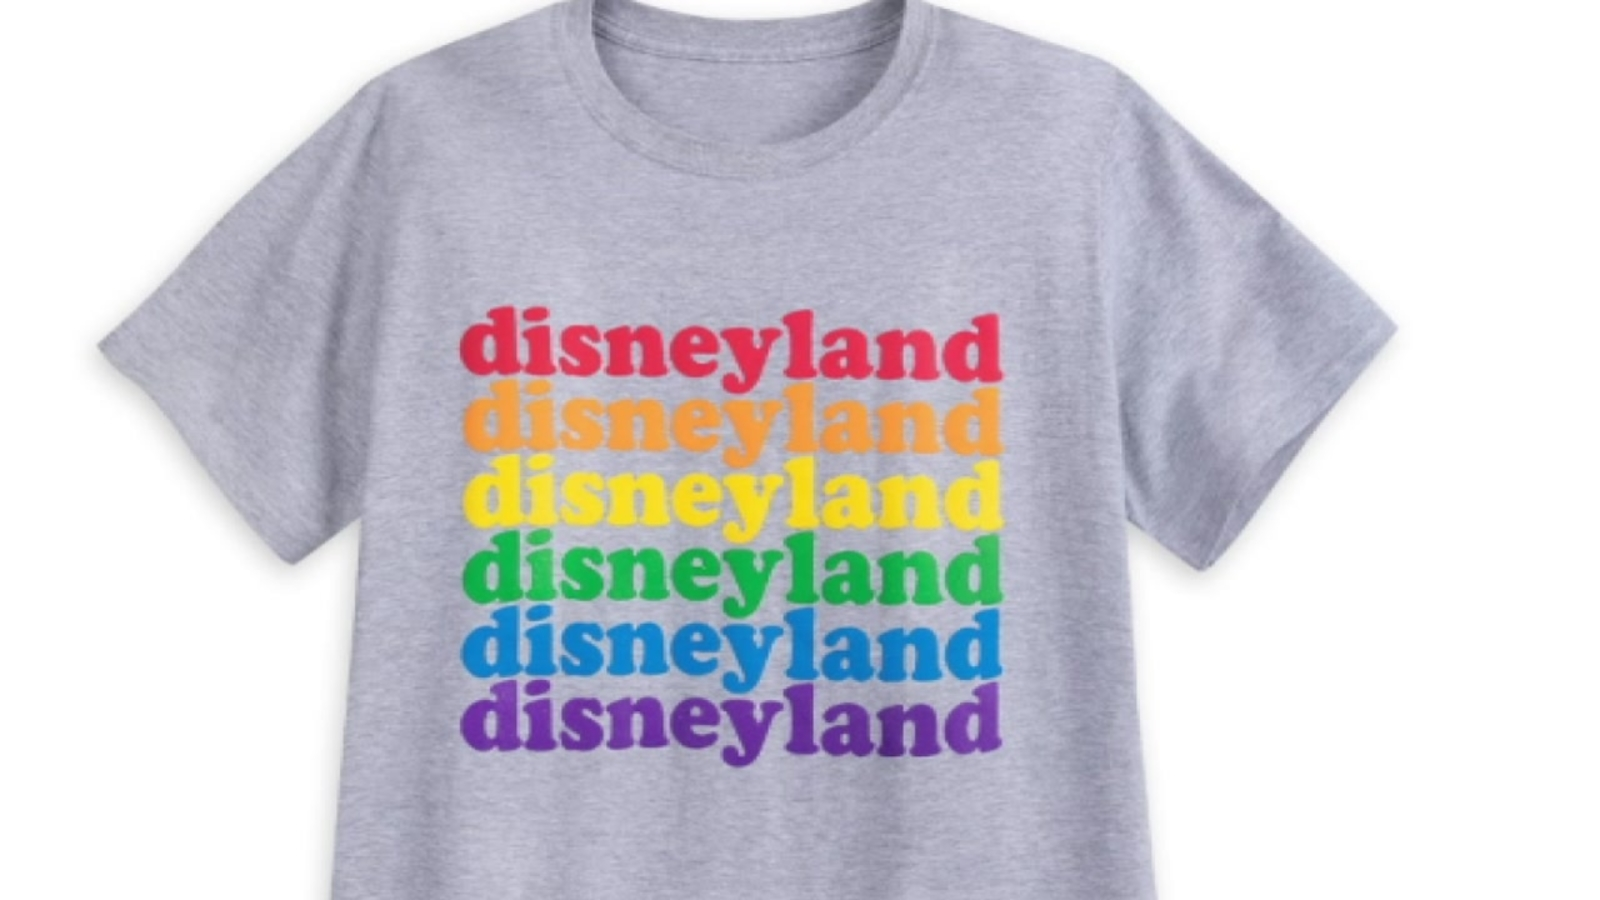 Rainbow Disney Collection unveiled in celebration of Pride Month